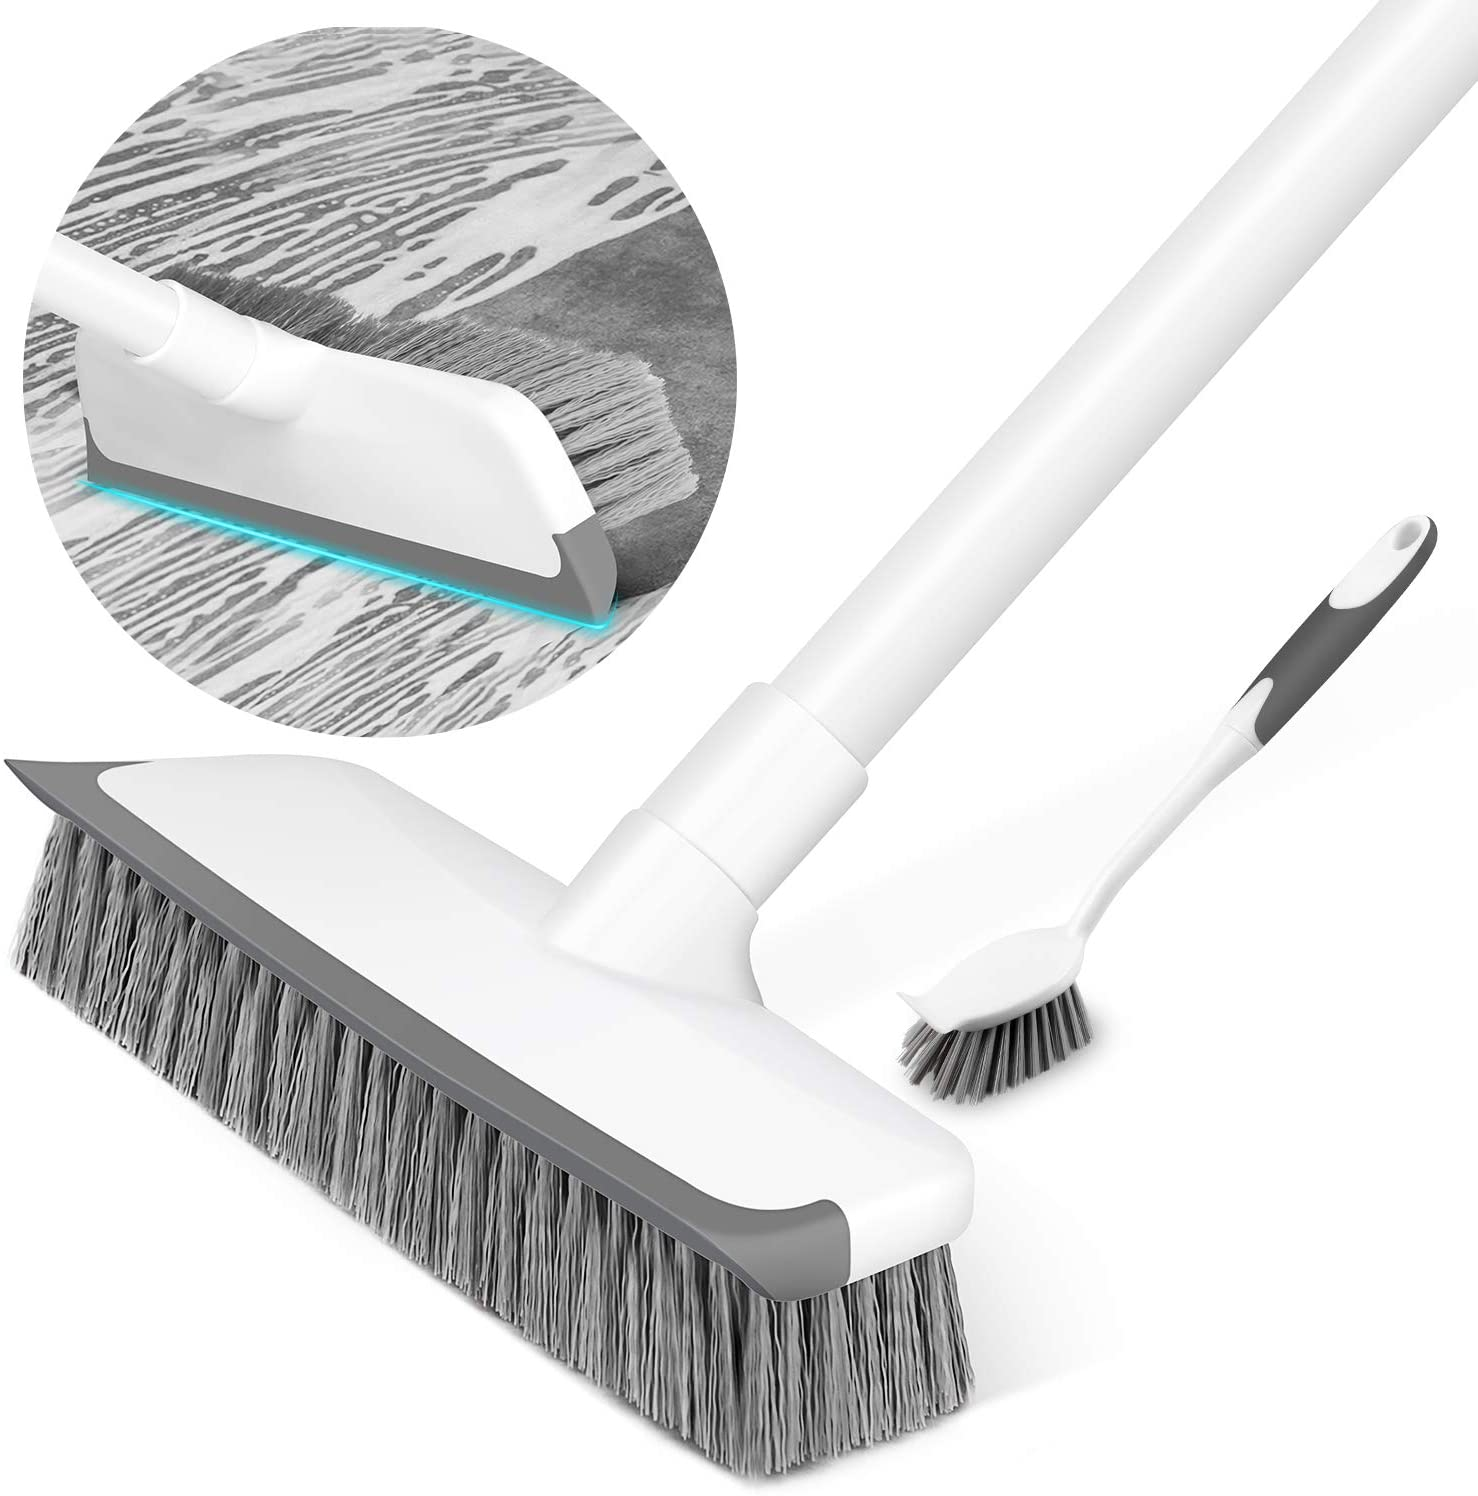 Floor Scrub Brush with Squeegee, Floor Brush Scrubber with Firm and Long  Handle, Shower Cleaning Brush for Bathroom, Patio, Kitchen, Wall and ...